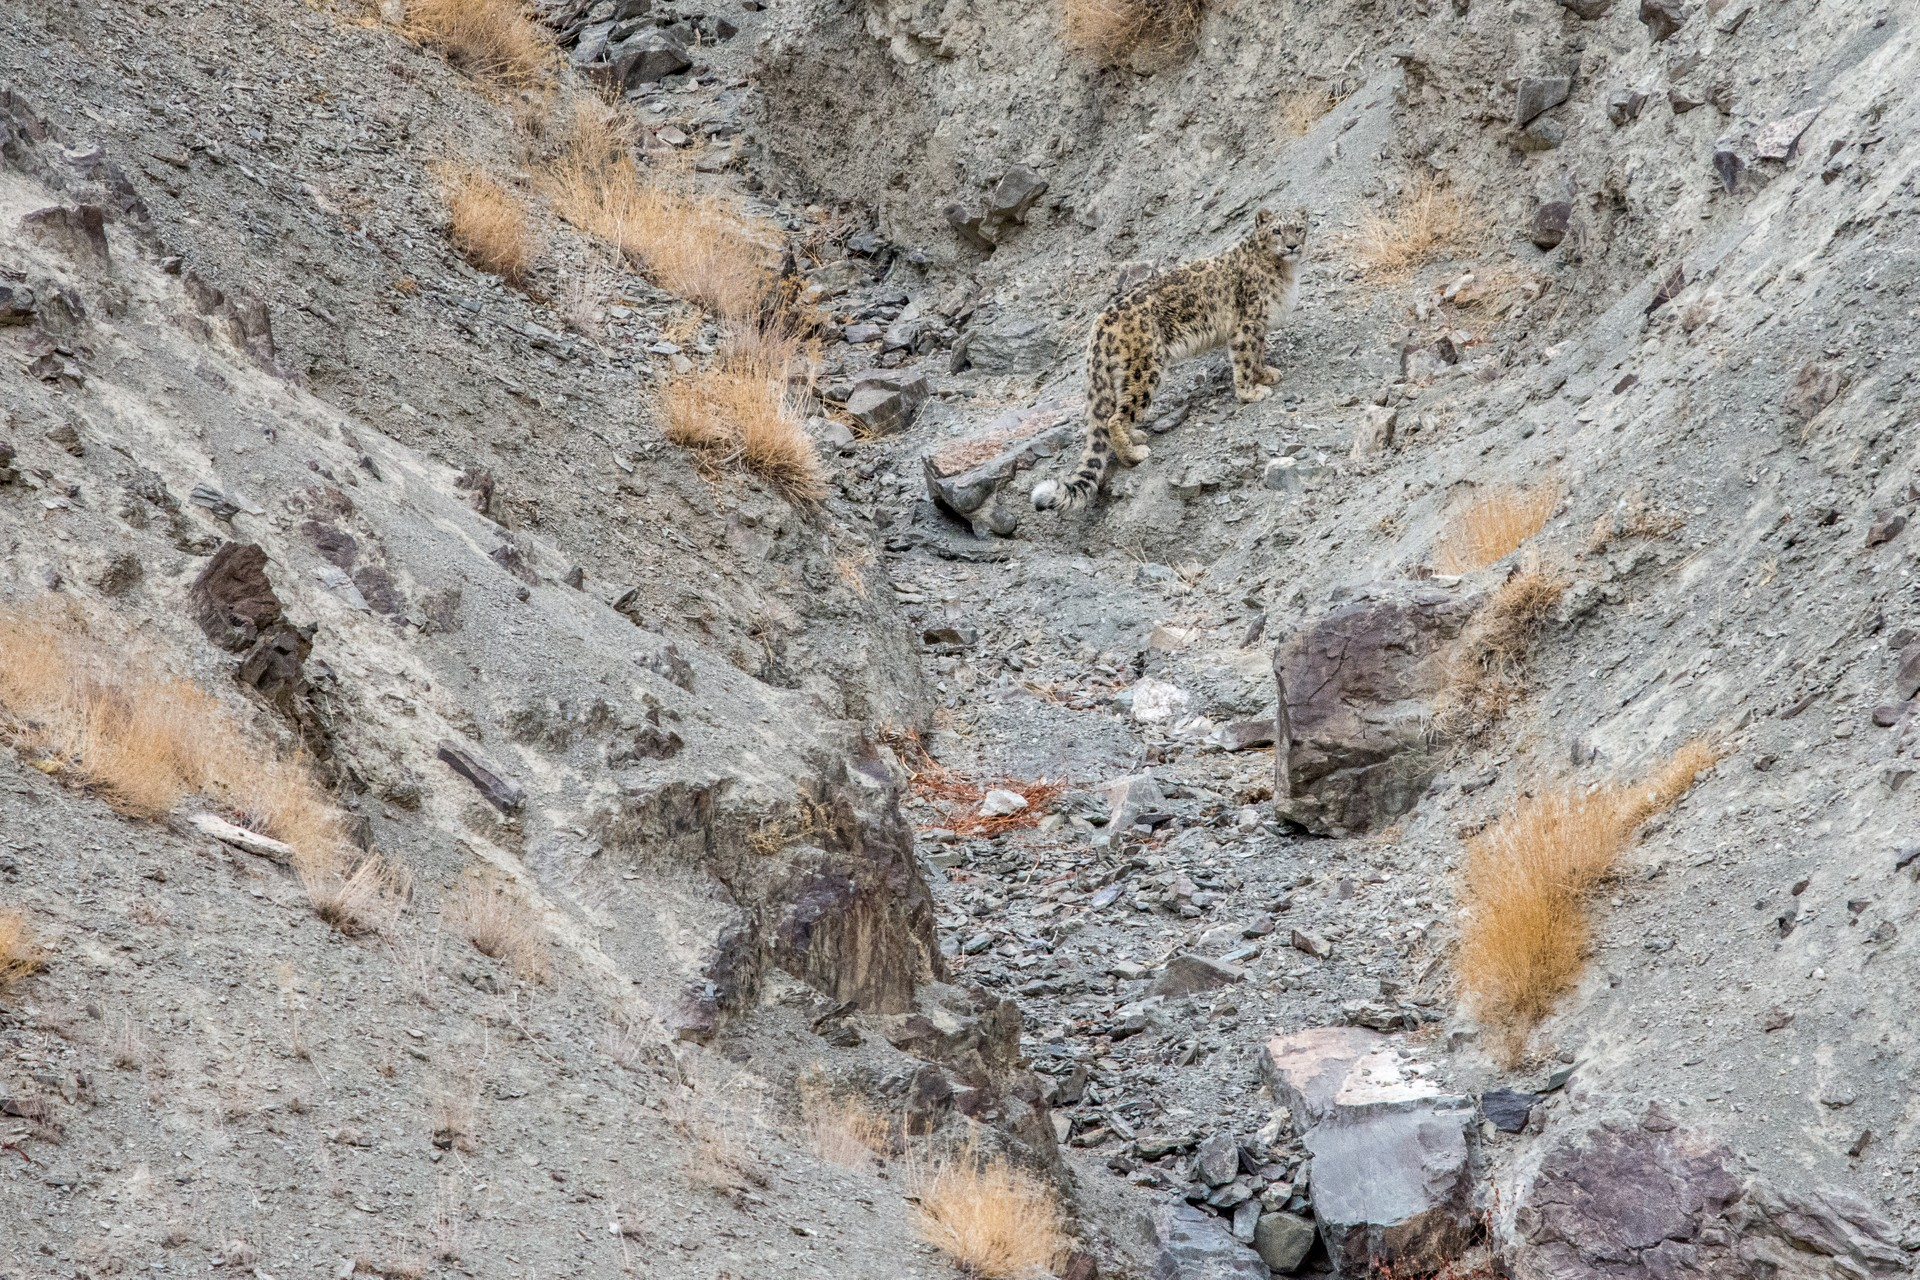 Snow leopard in mountain valley